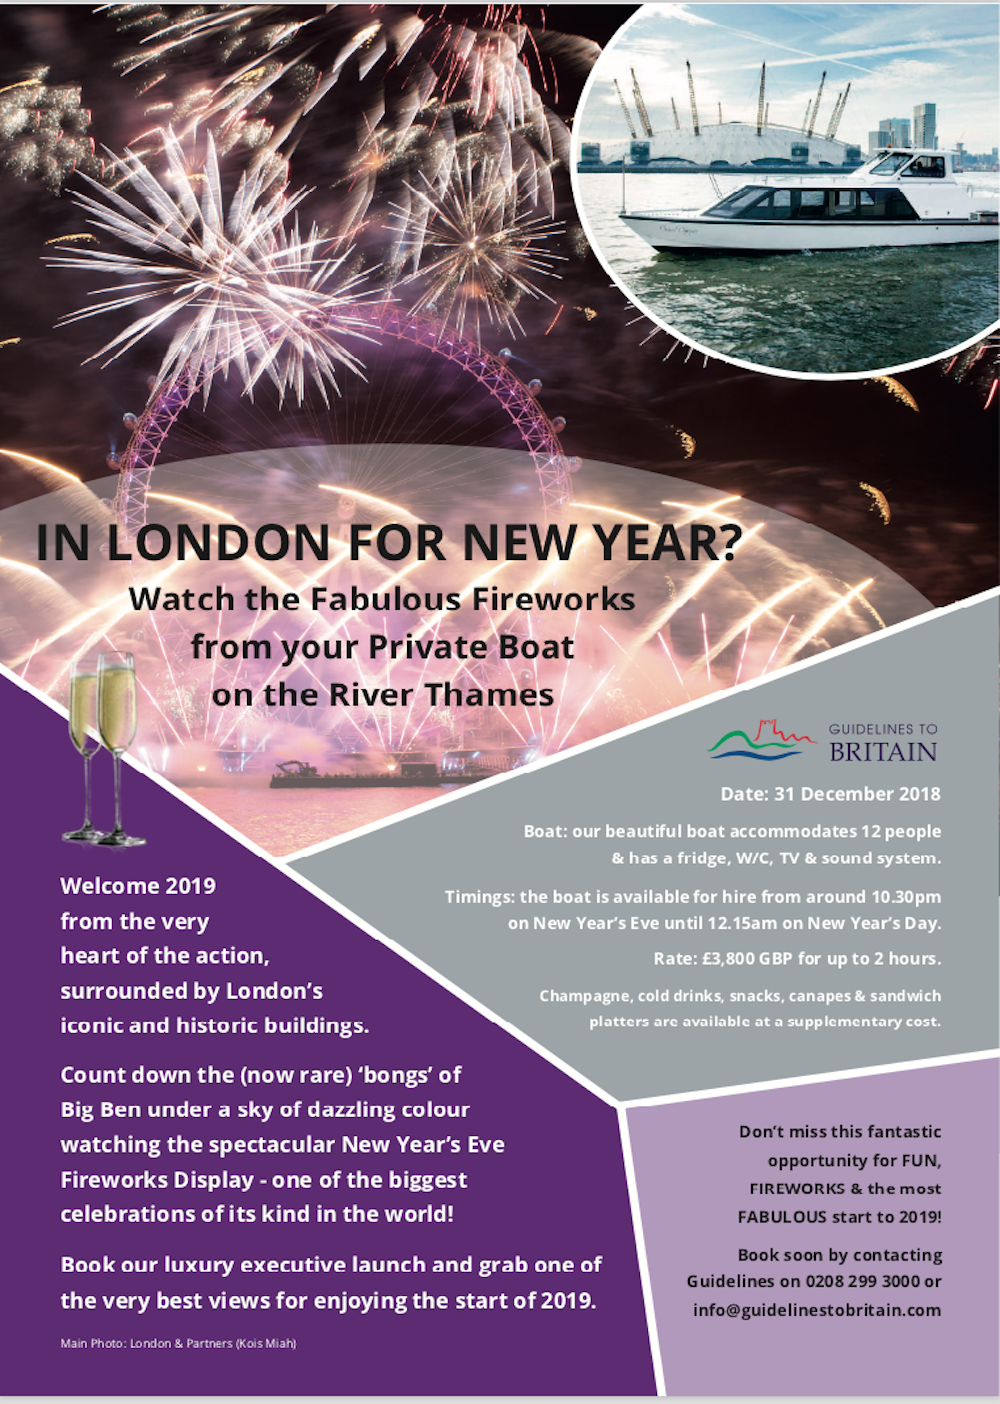 London New Year's Eve Fireworks 2018